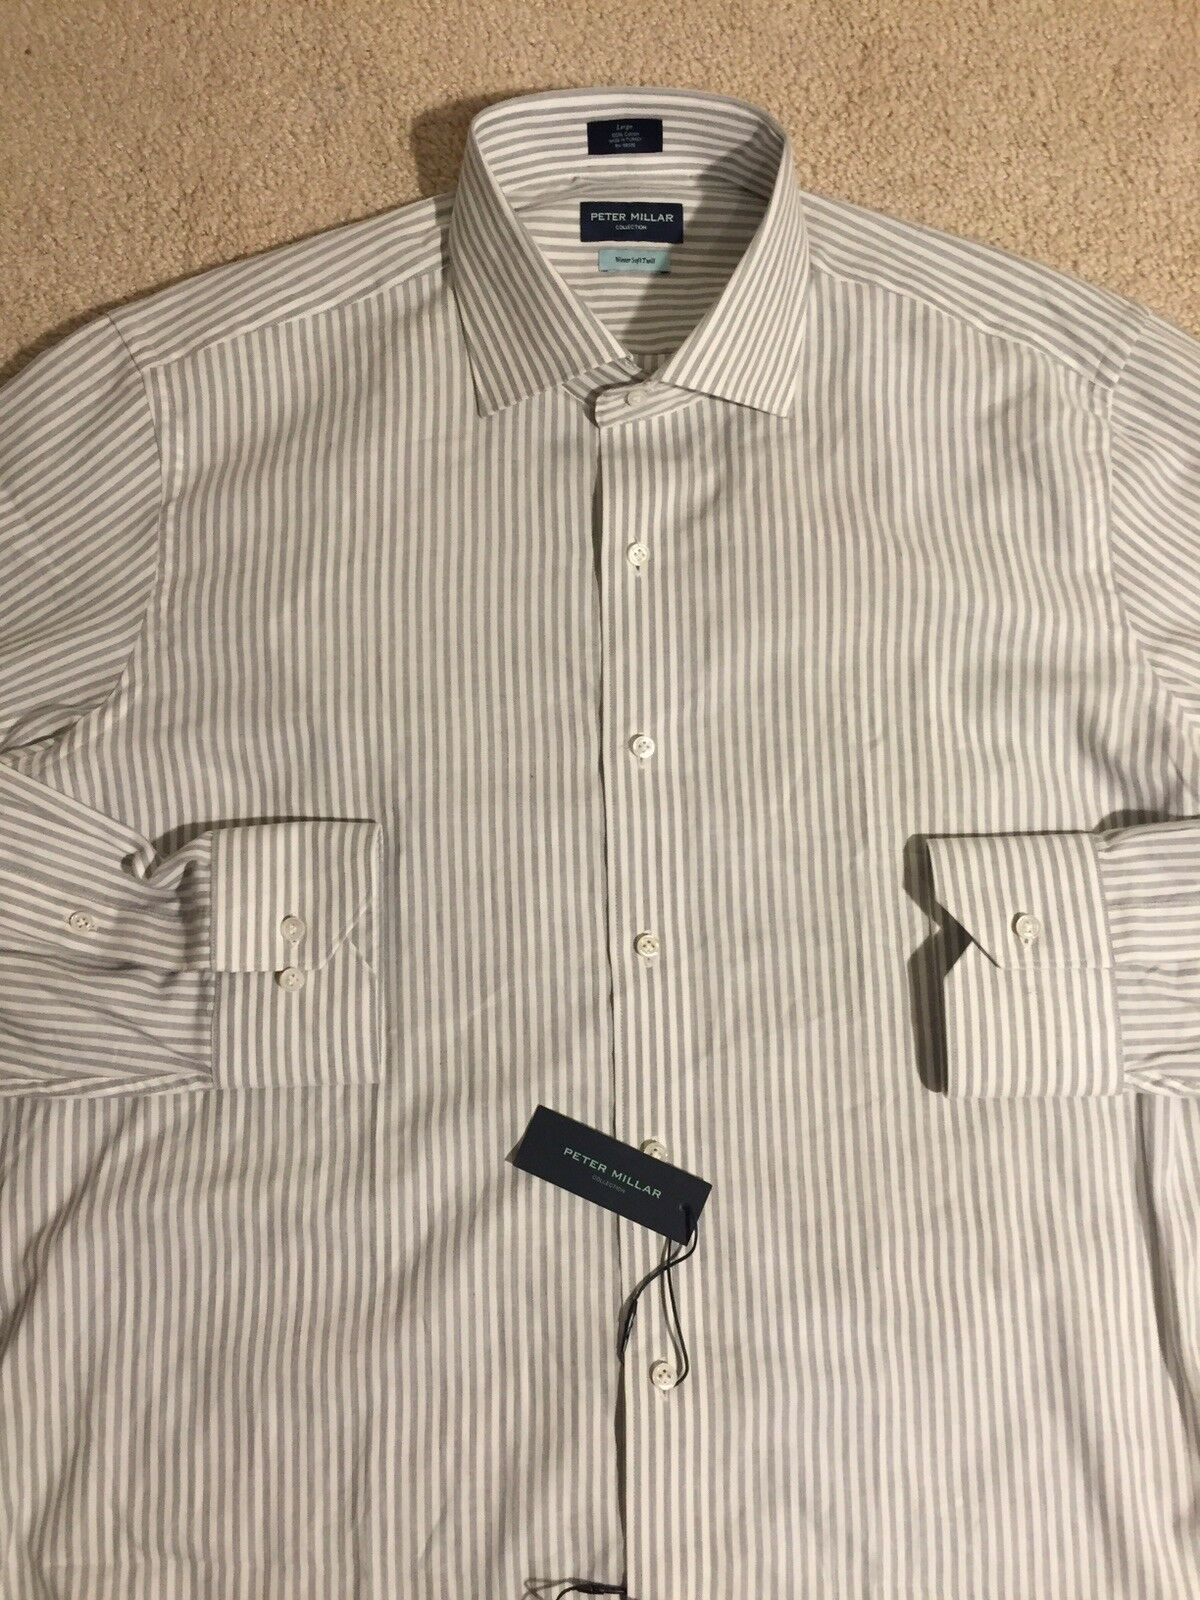 Peter Millar Collection Sport Shirt Soft Twill Striped NEW Men's Large  NWT